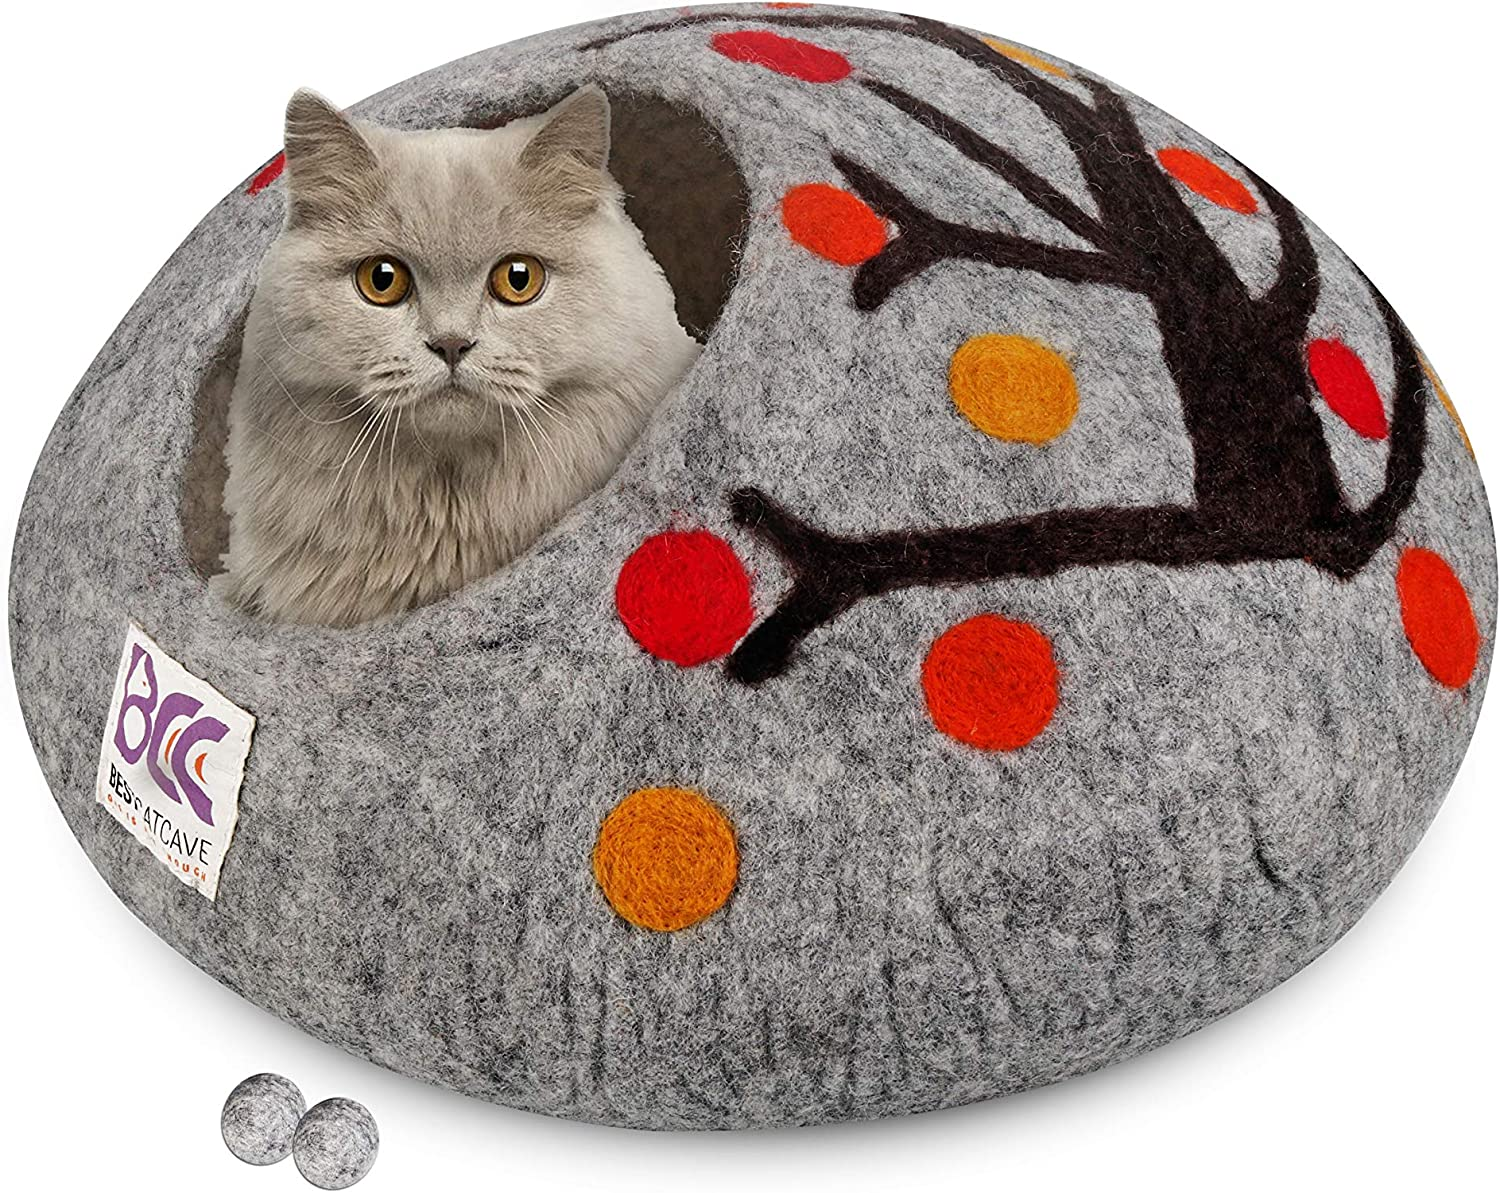 Large ~ Handmade Eco Friendly Natural Felted Merino Wool ~ Warm and Cozy Beds for Cats and Kittens ~ Bonus Felt Wool Ball Cat Cave Bed Orange, Pumpkin